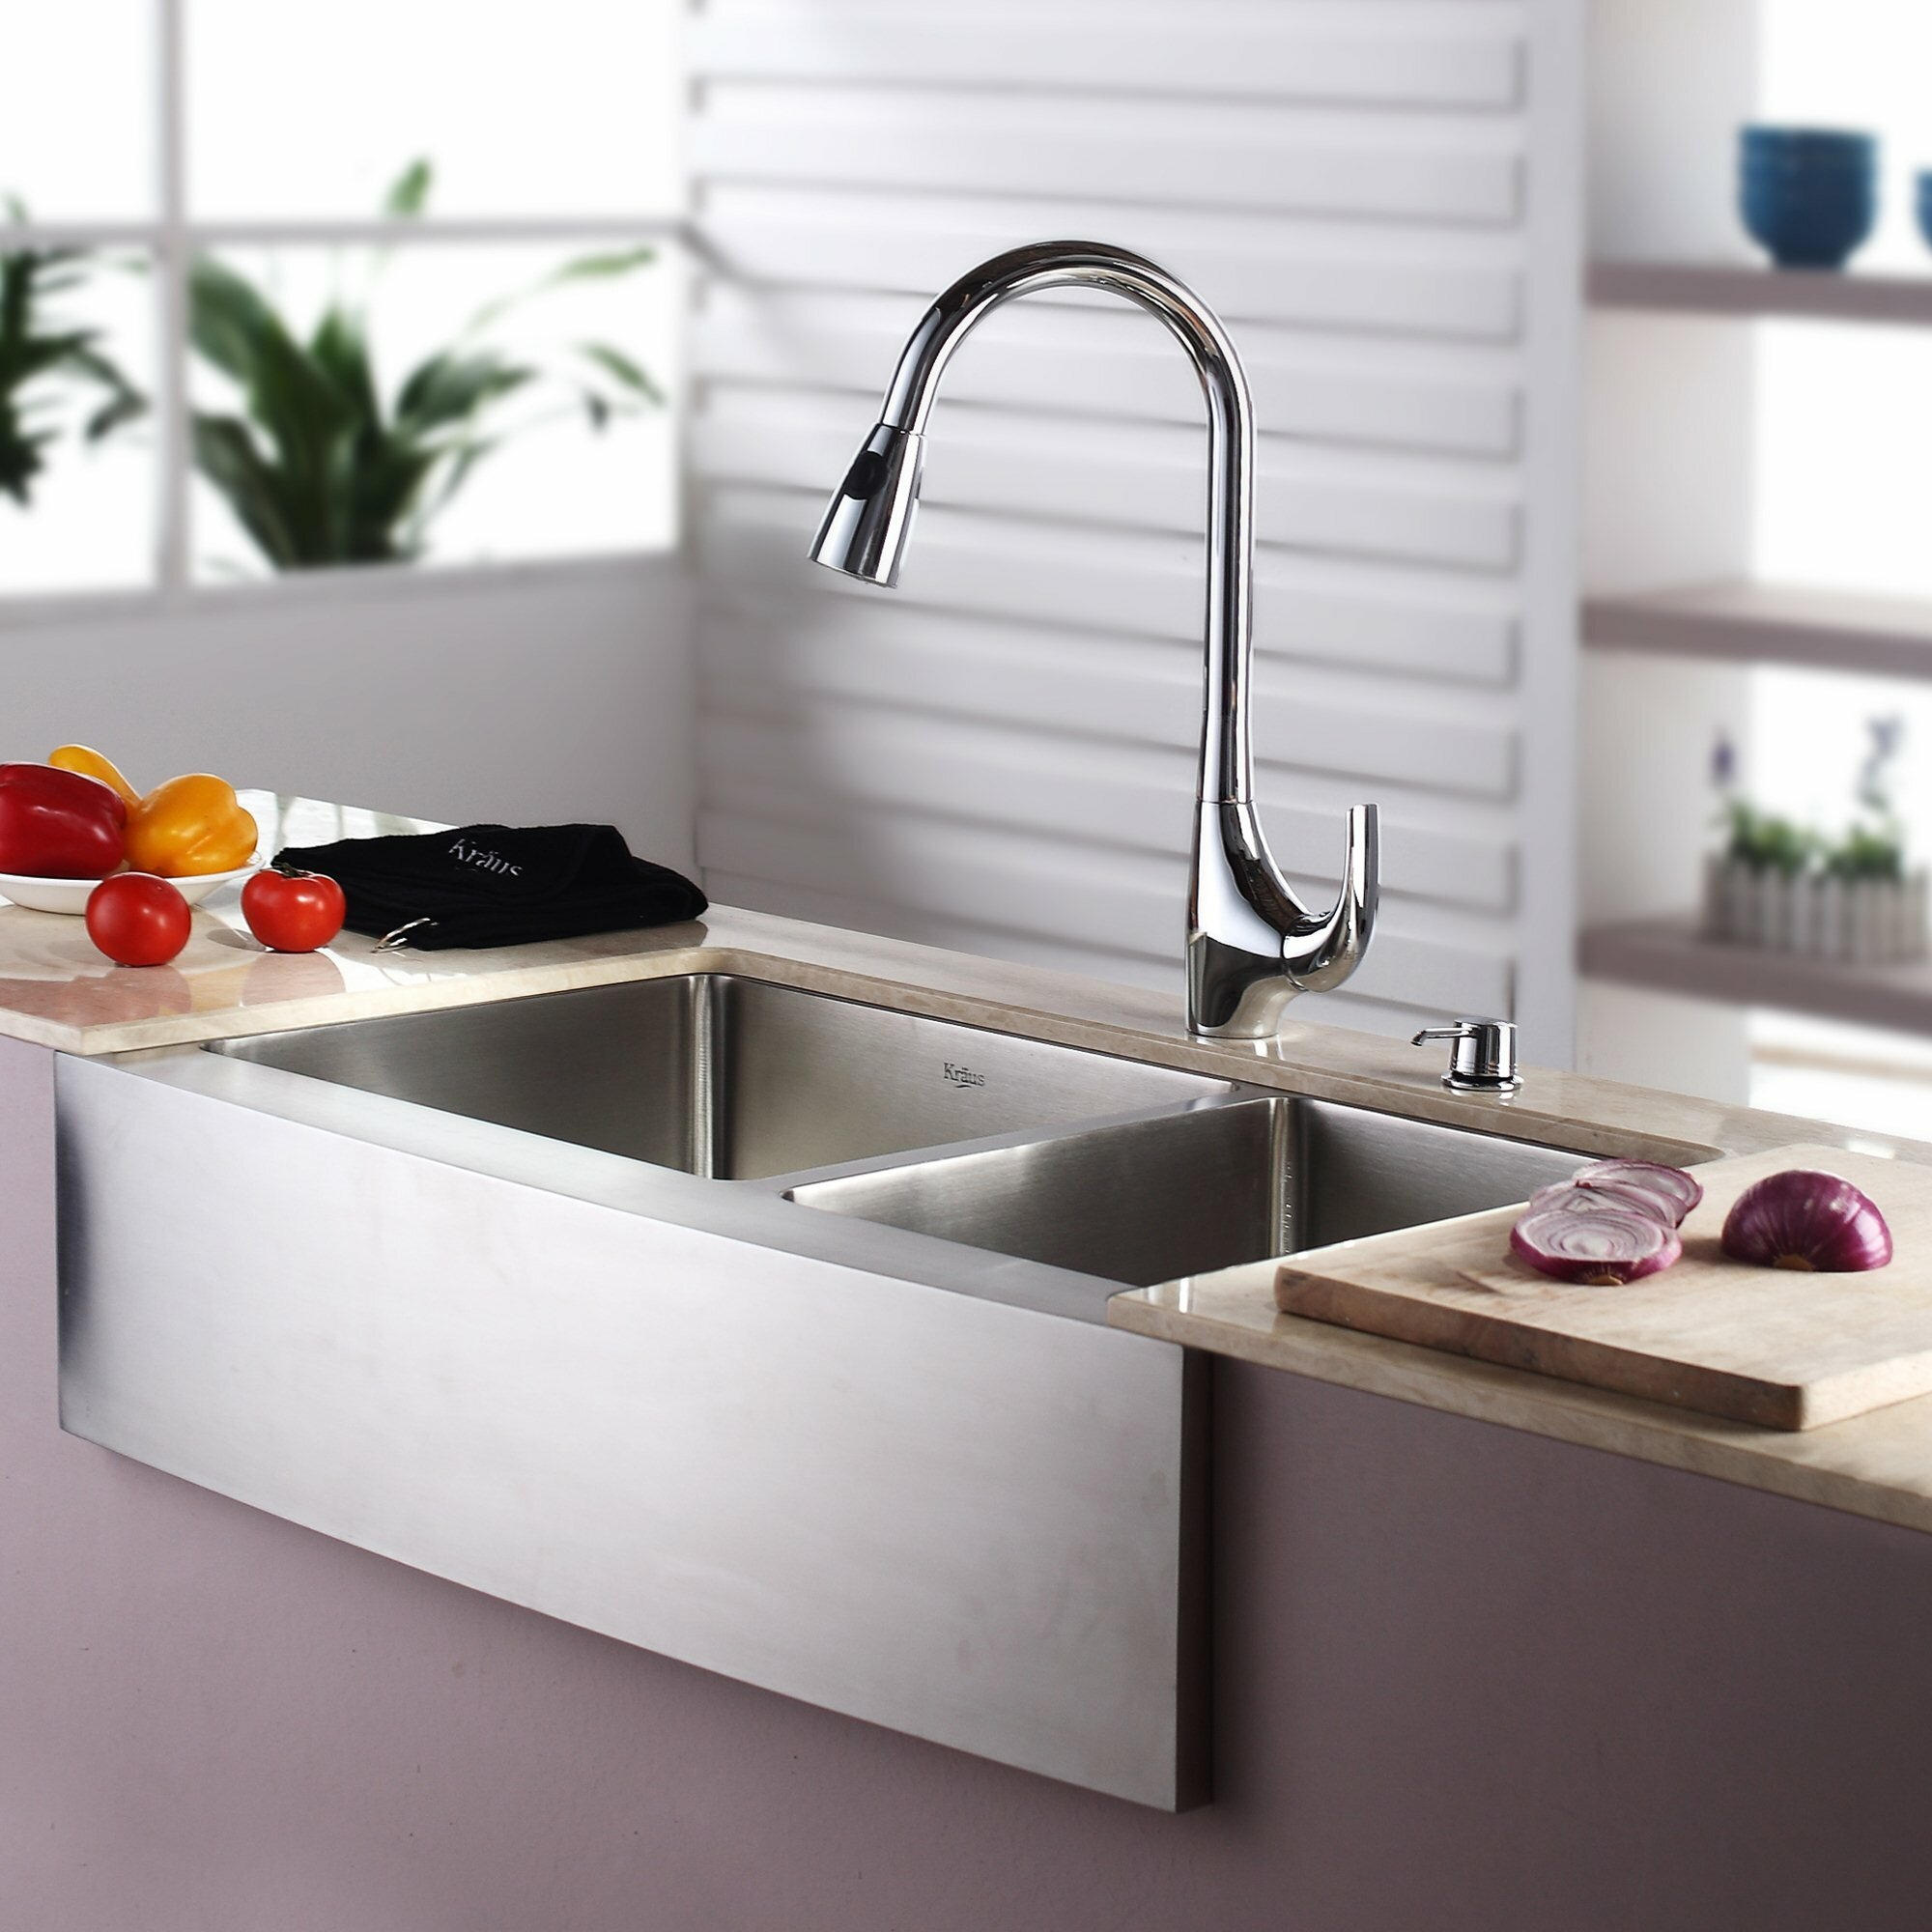 kraus kitchen sinks kraus 32 88 quot x 20 75 quot farmhouse bowl kitchen sink 3612